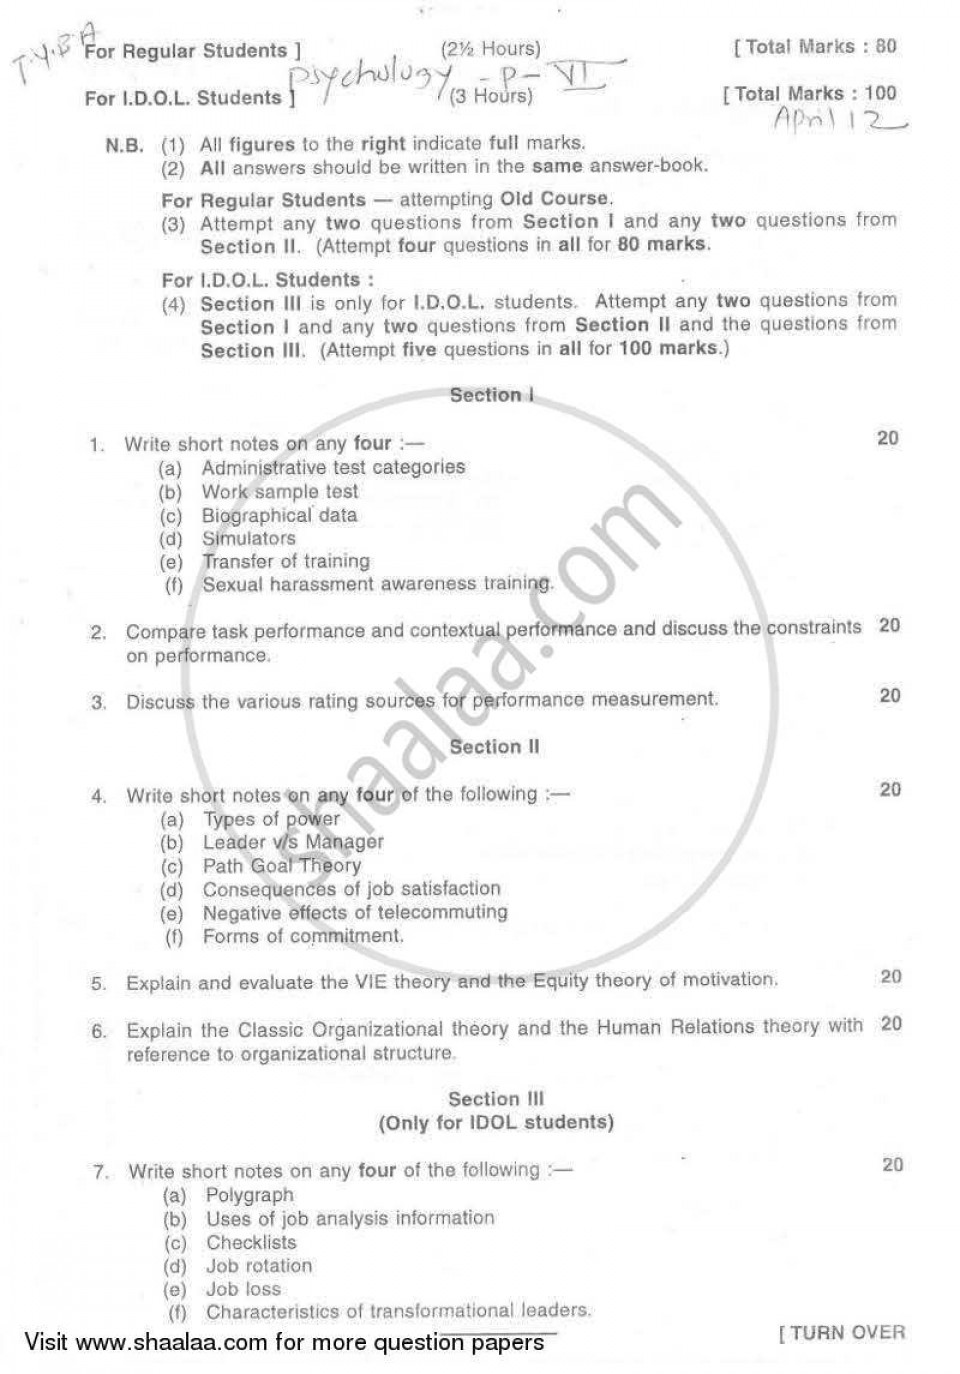 017 Psychologyearch Paper On Dreams University Of Mumbai Bachelor Industrial Organizational T Y Yearly Pattern Semester Tyba 2011 29a03925dfc524f2aa4cb10e4d3da996a Singular Psychology Research Topics 960